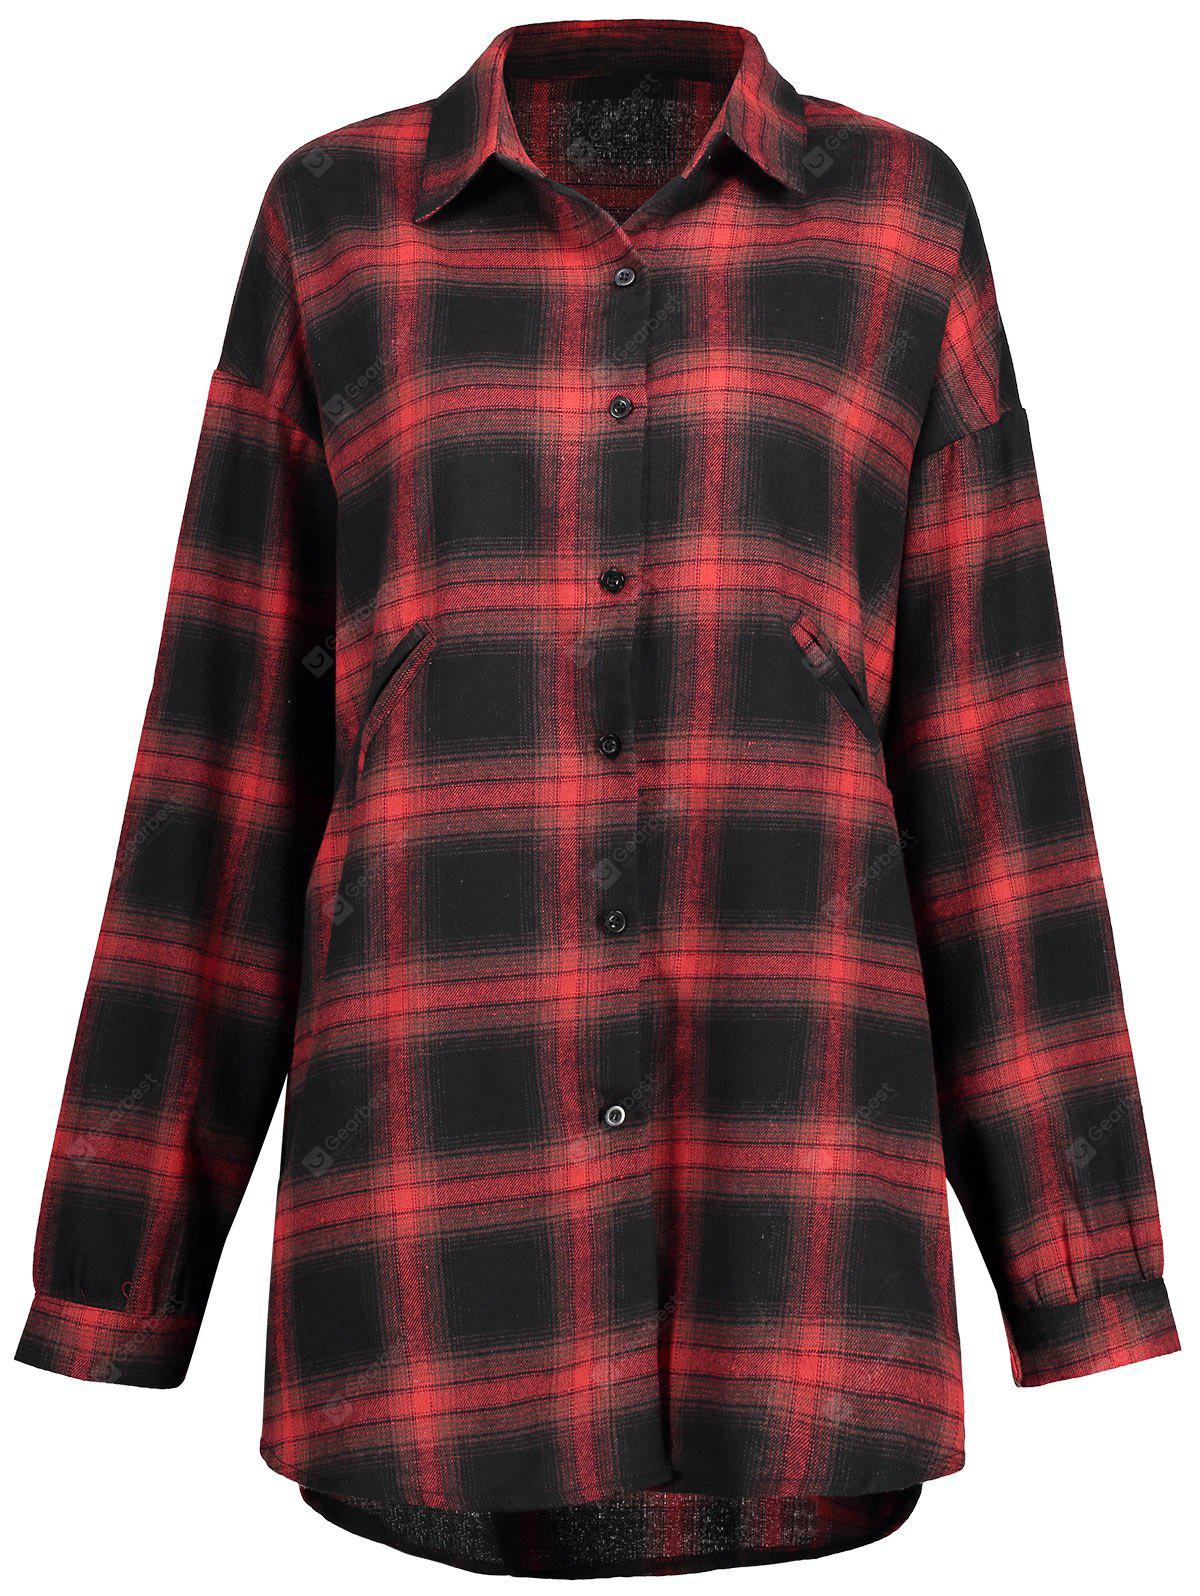 Plus Size Check Button Up Shirt